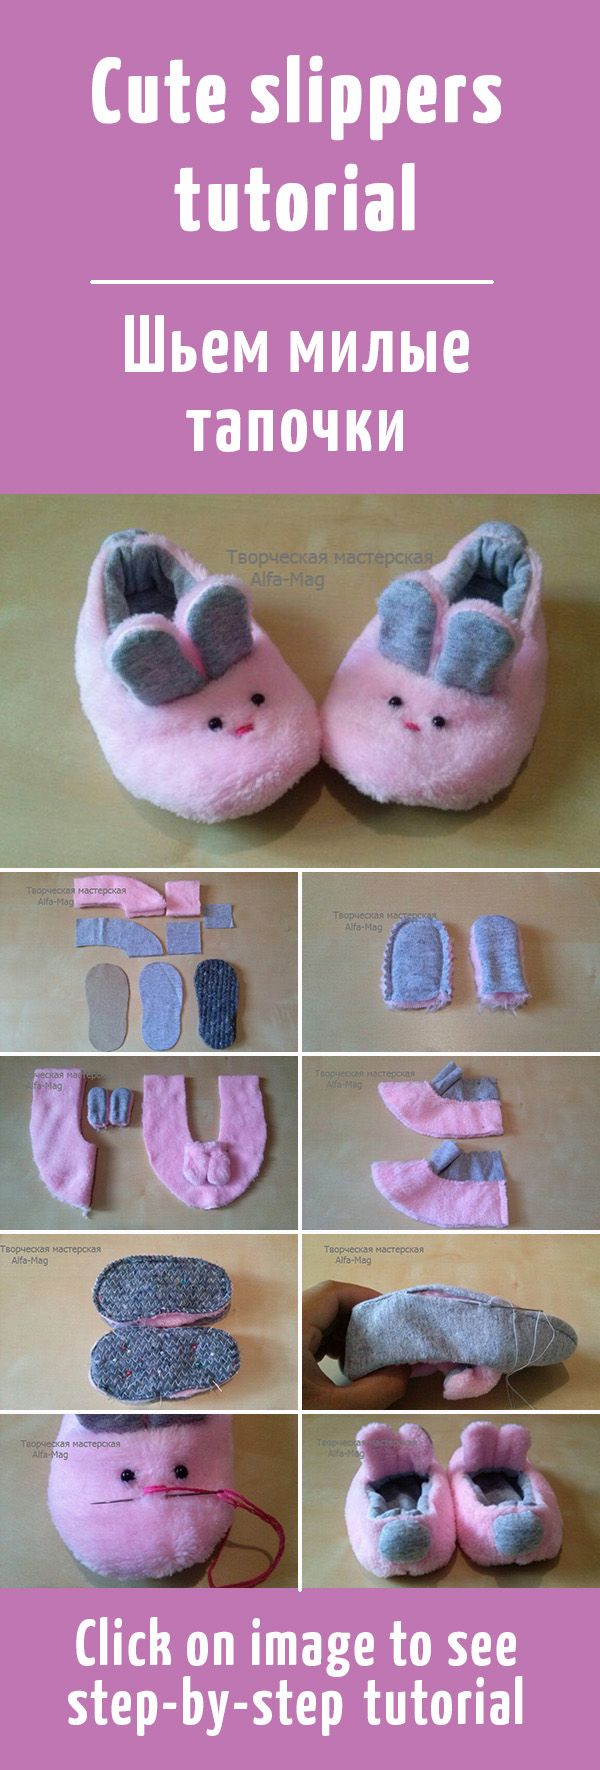 Шьем милые тапочки-зайчики / cute slippers tutorial #sewing #мастеркласс